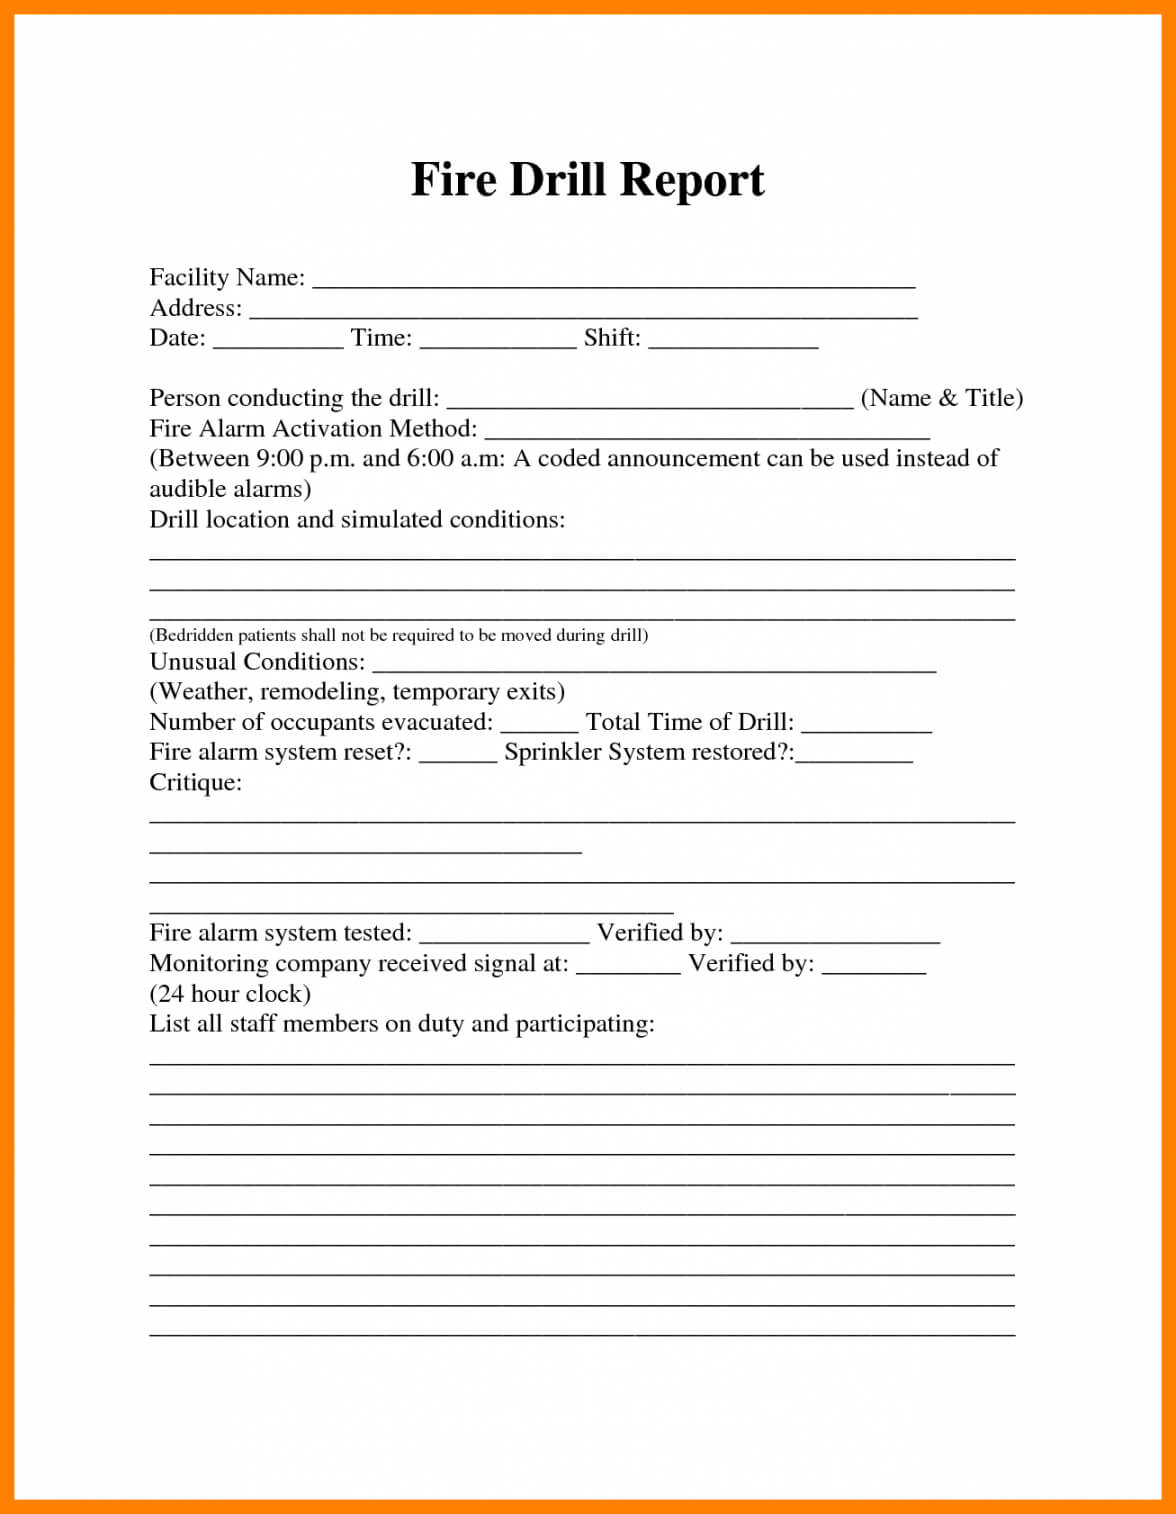 Fire Drill Report Template Throughout Emergency Drill Report Template